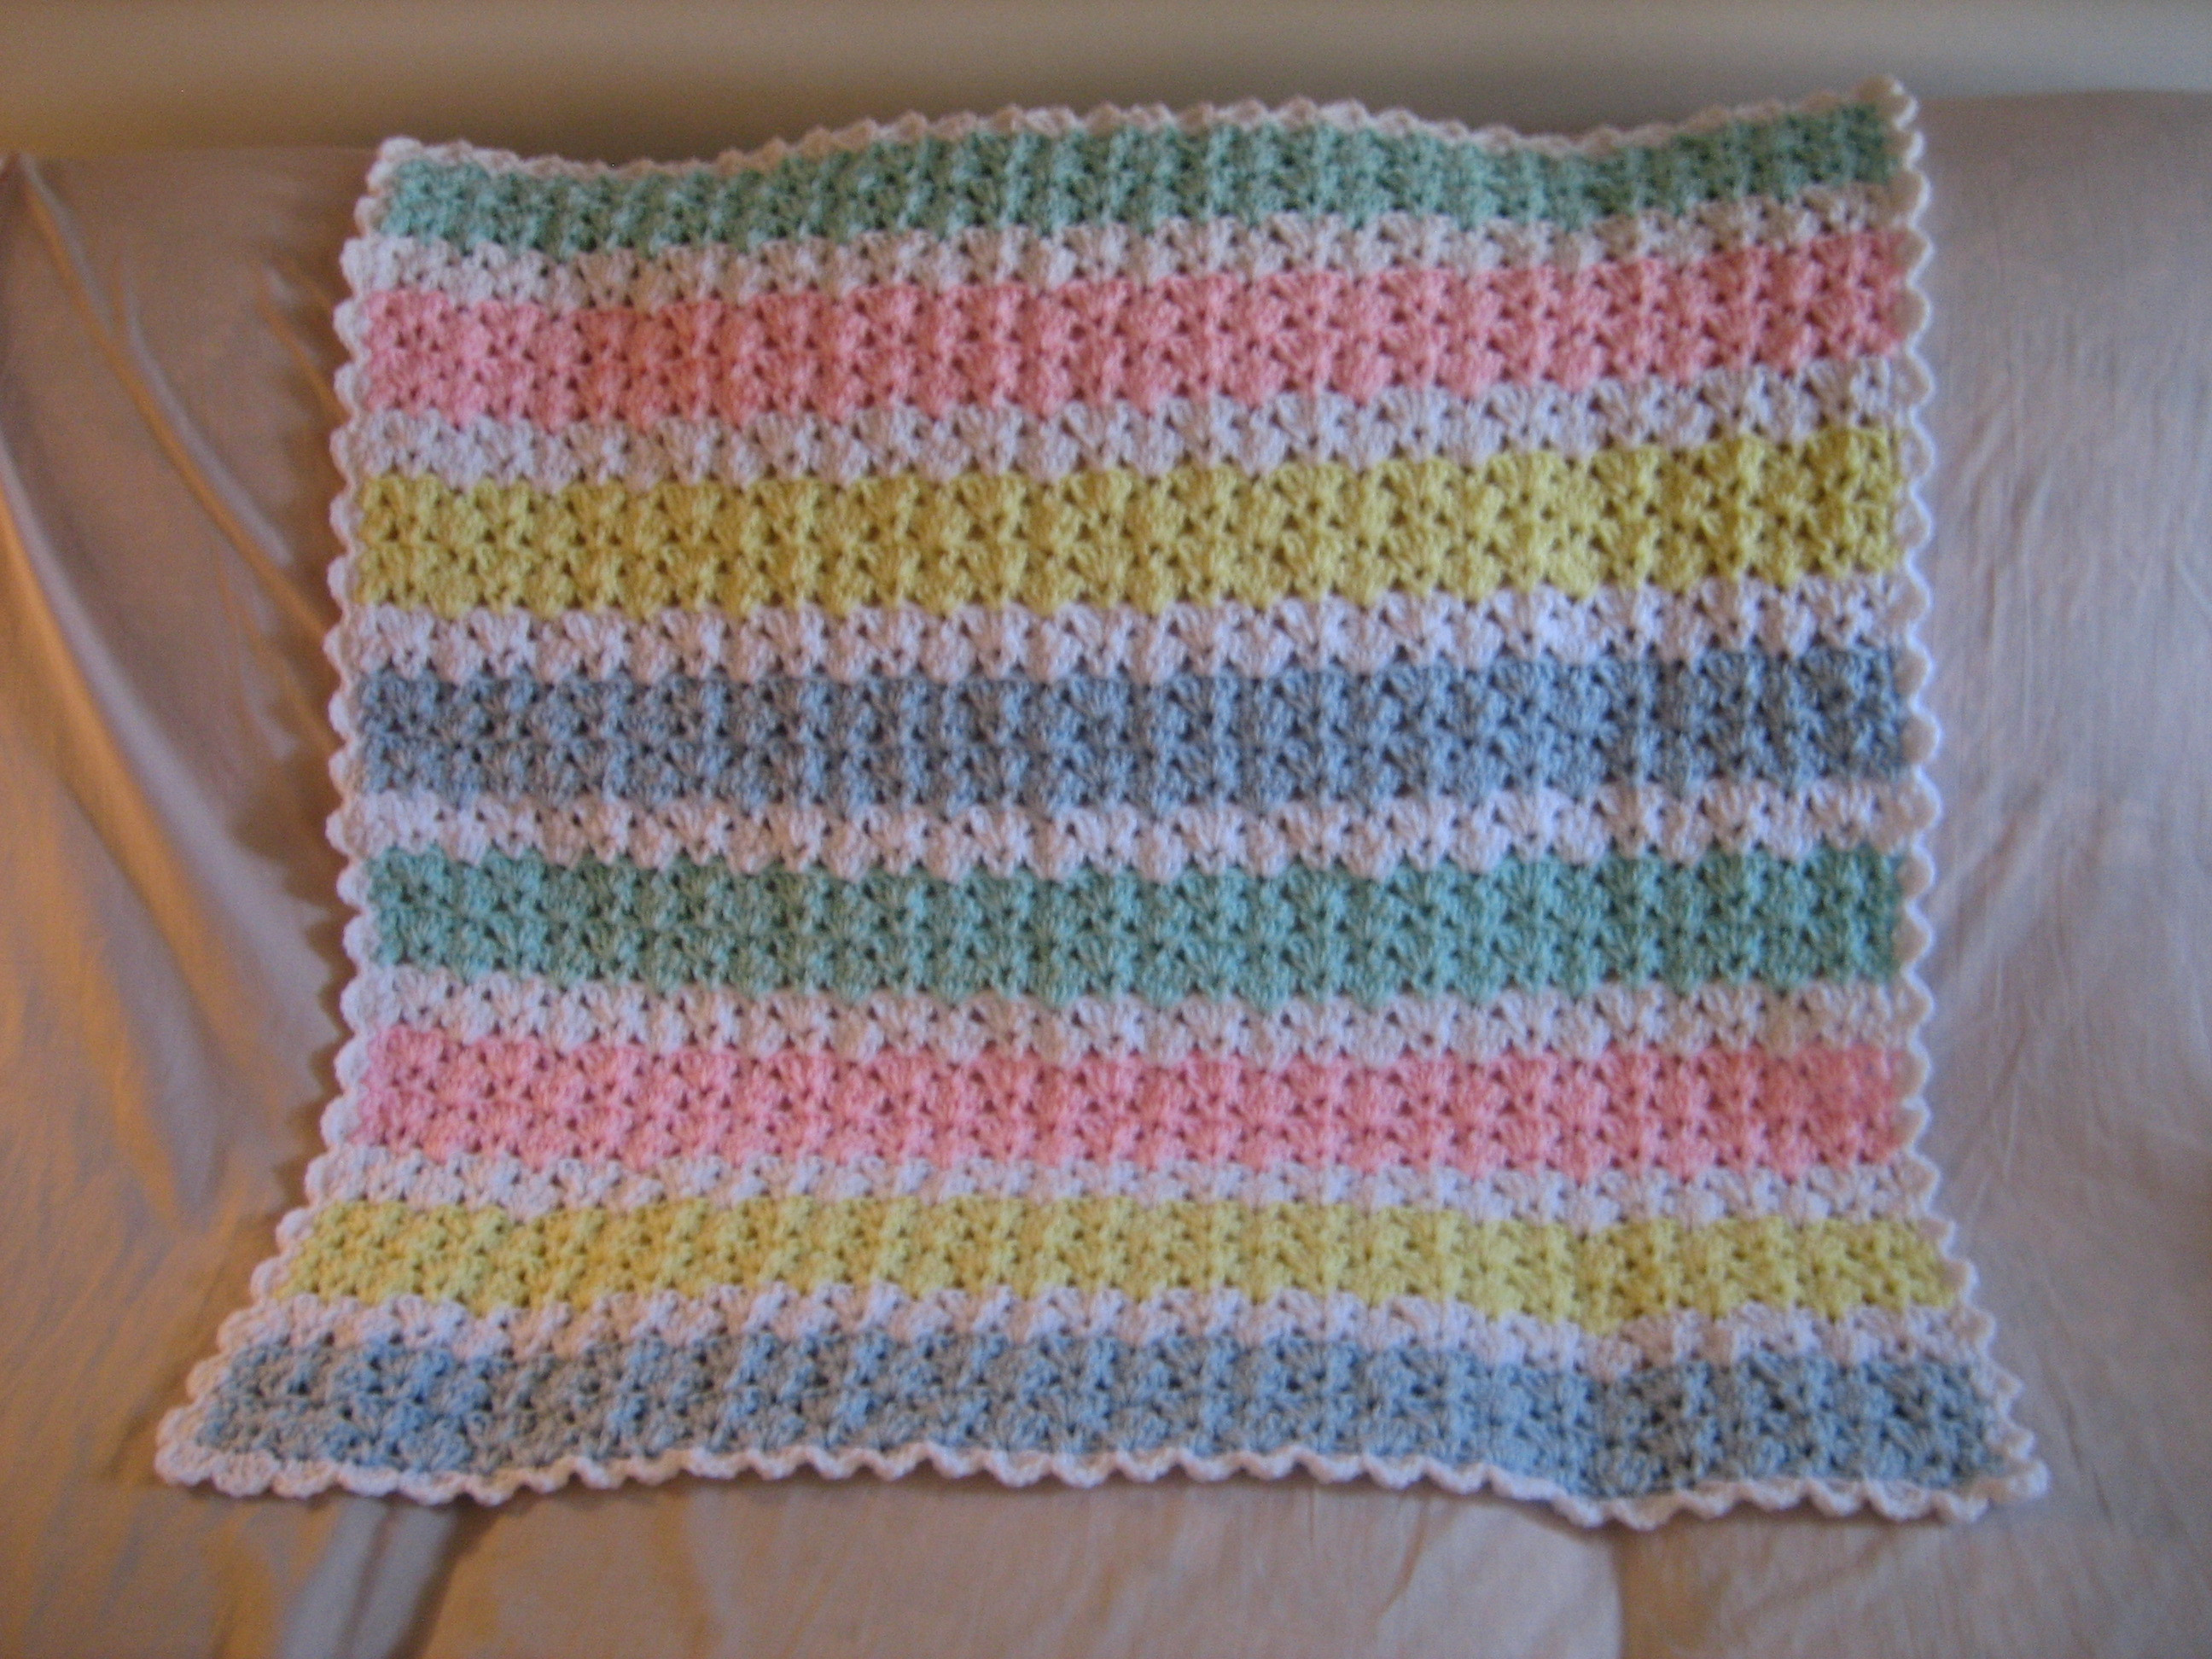 Awesome 39 Free Baby Afghan Crochet Patterns Free Baby Crochet Patterns for Beginners Of Lovely 42 Models Free Baby Crochet Patterns for Beginners